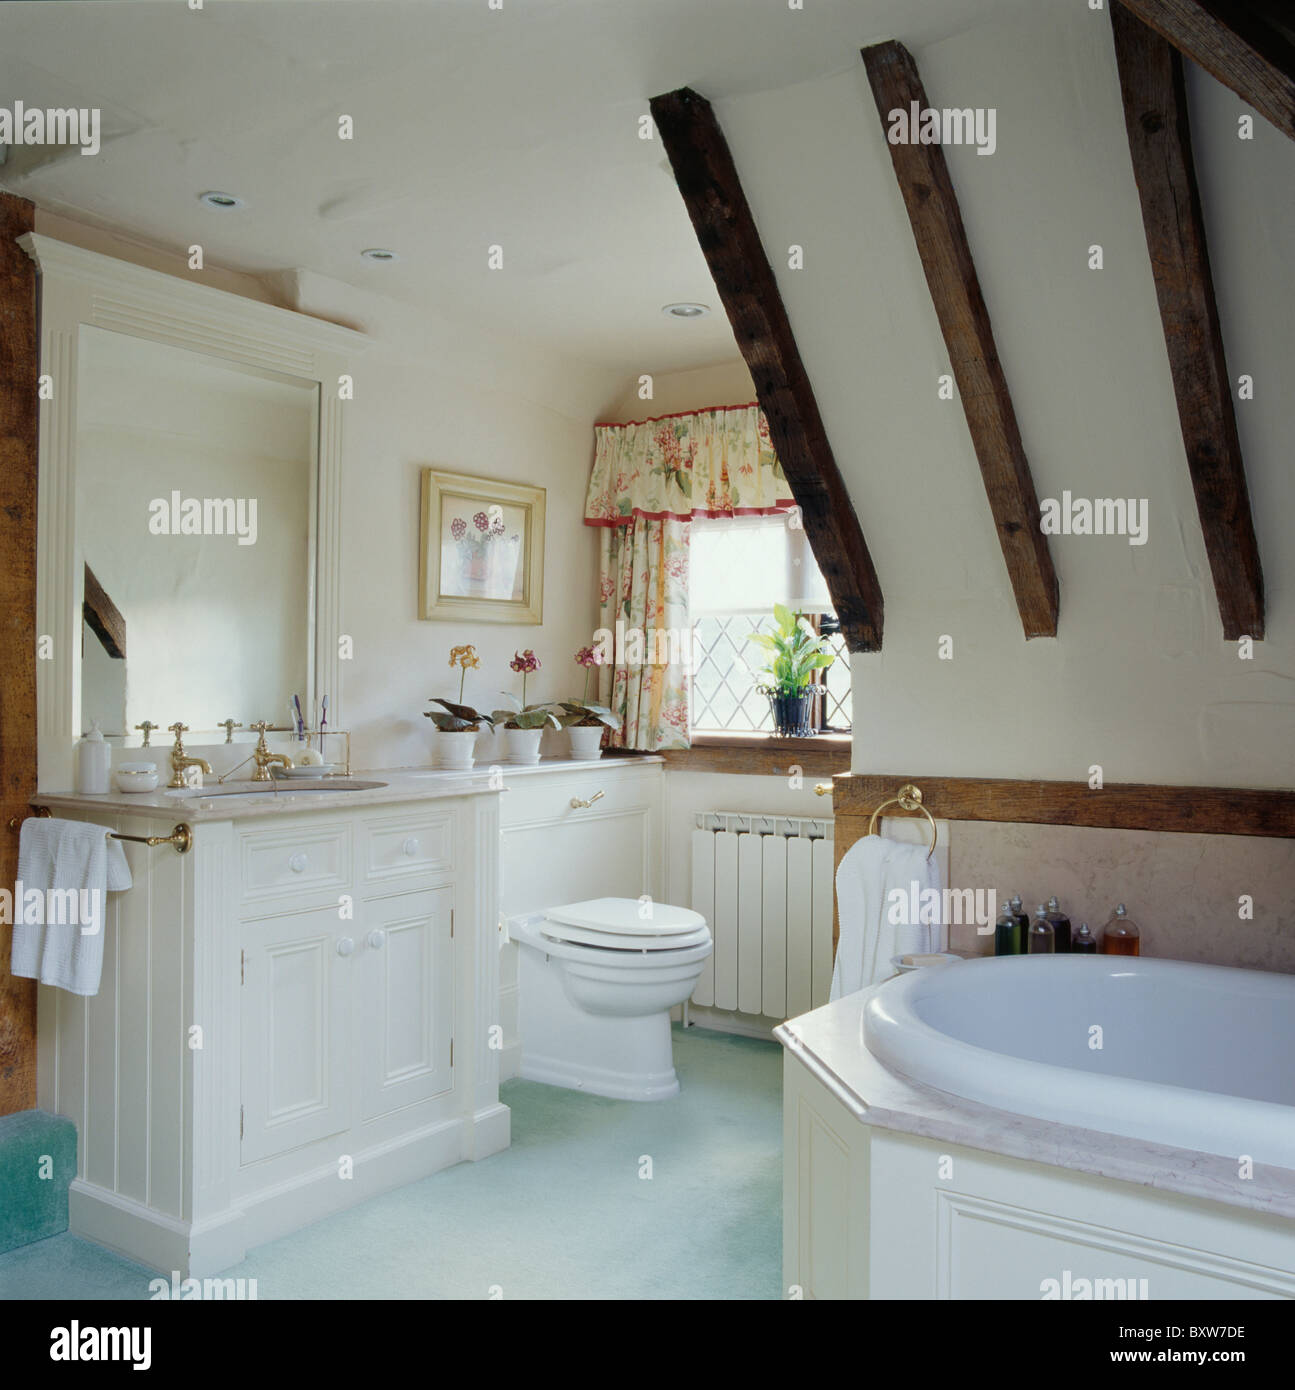 Large Mirror Above Vanity Unit In Attic Bathroom With Pale Blue Carpet